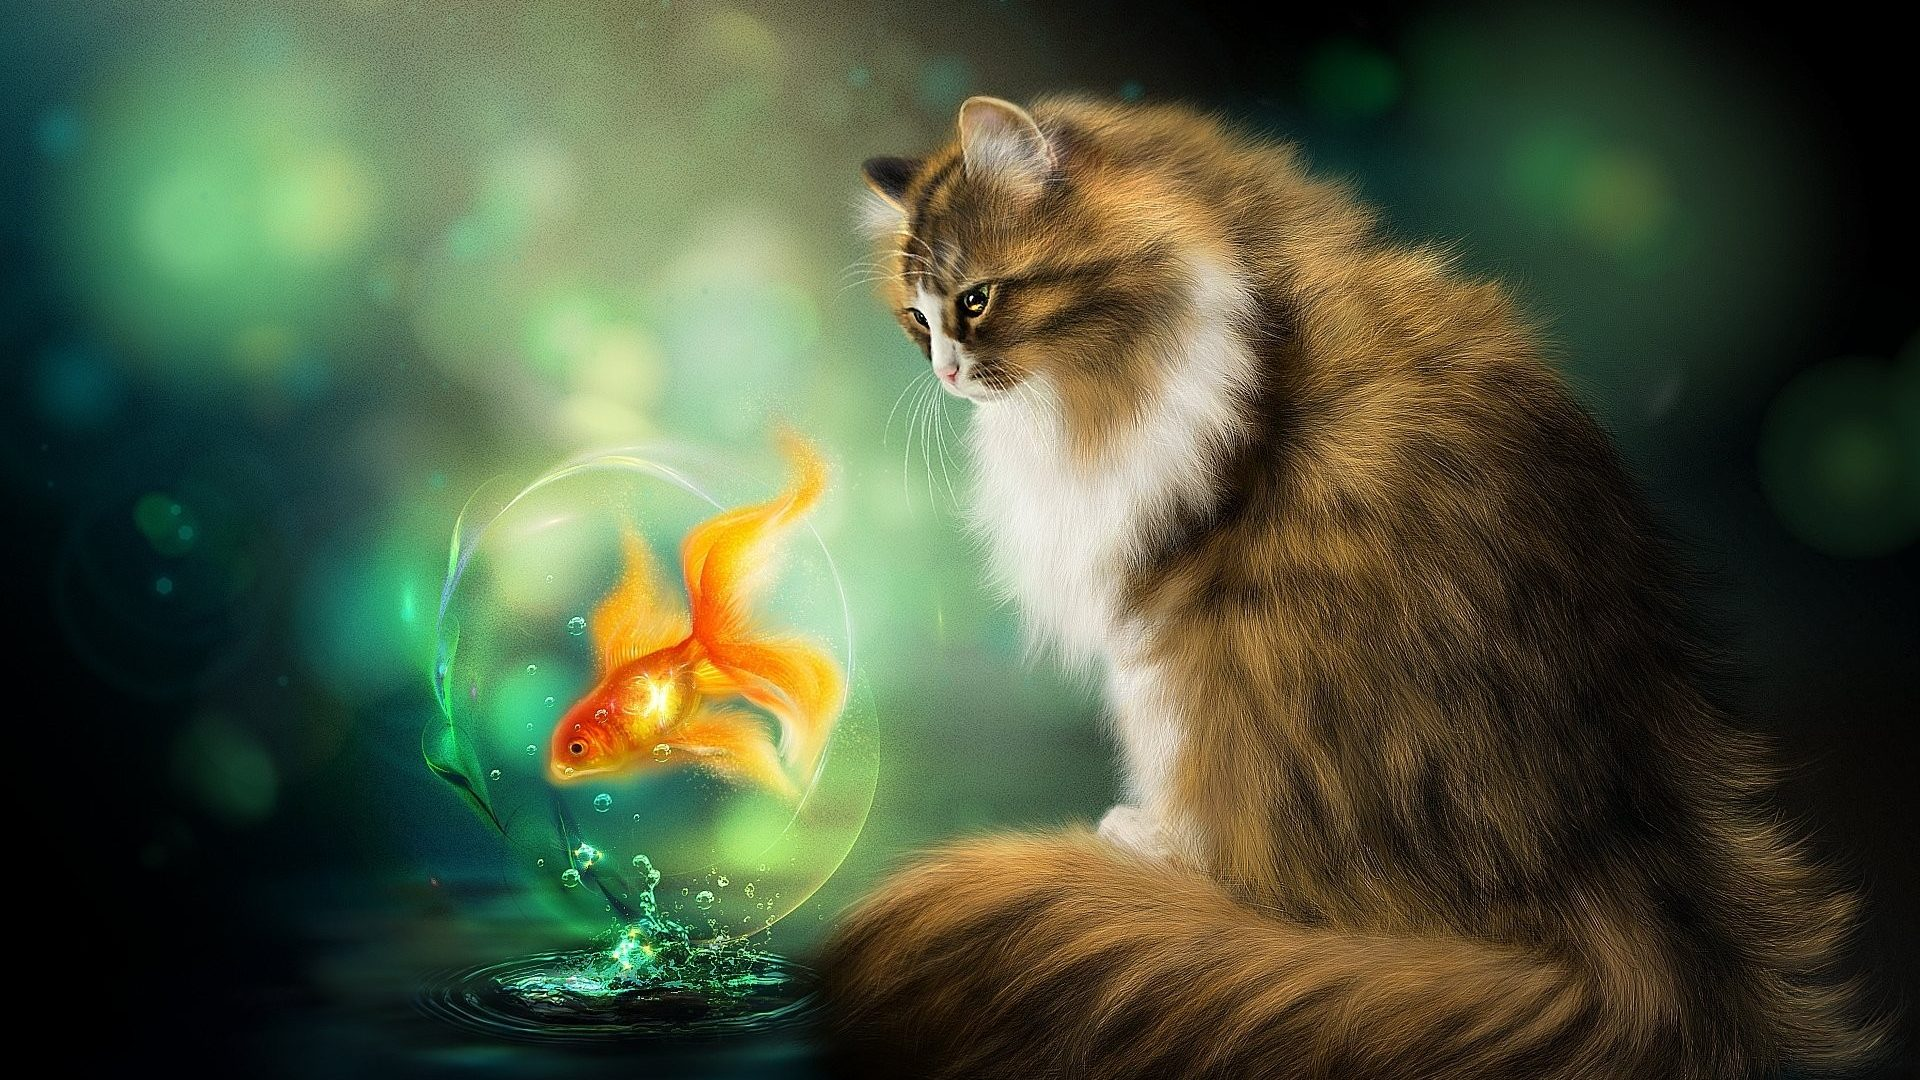 cats-fantasy-fish-painting-art-animals-photos-wild-cat-x-pic